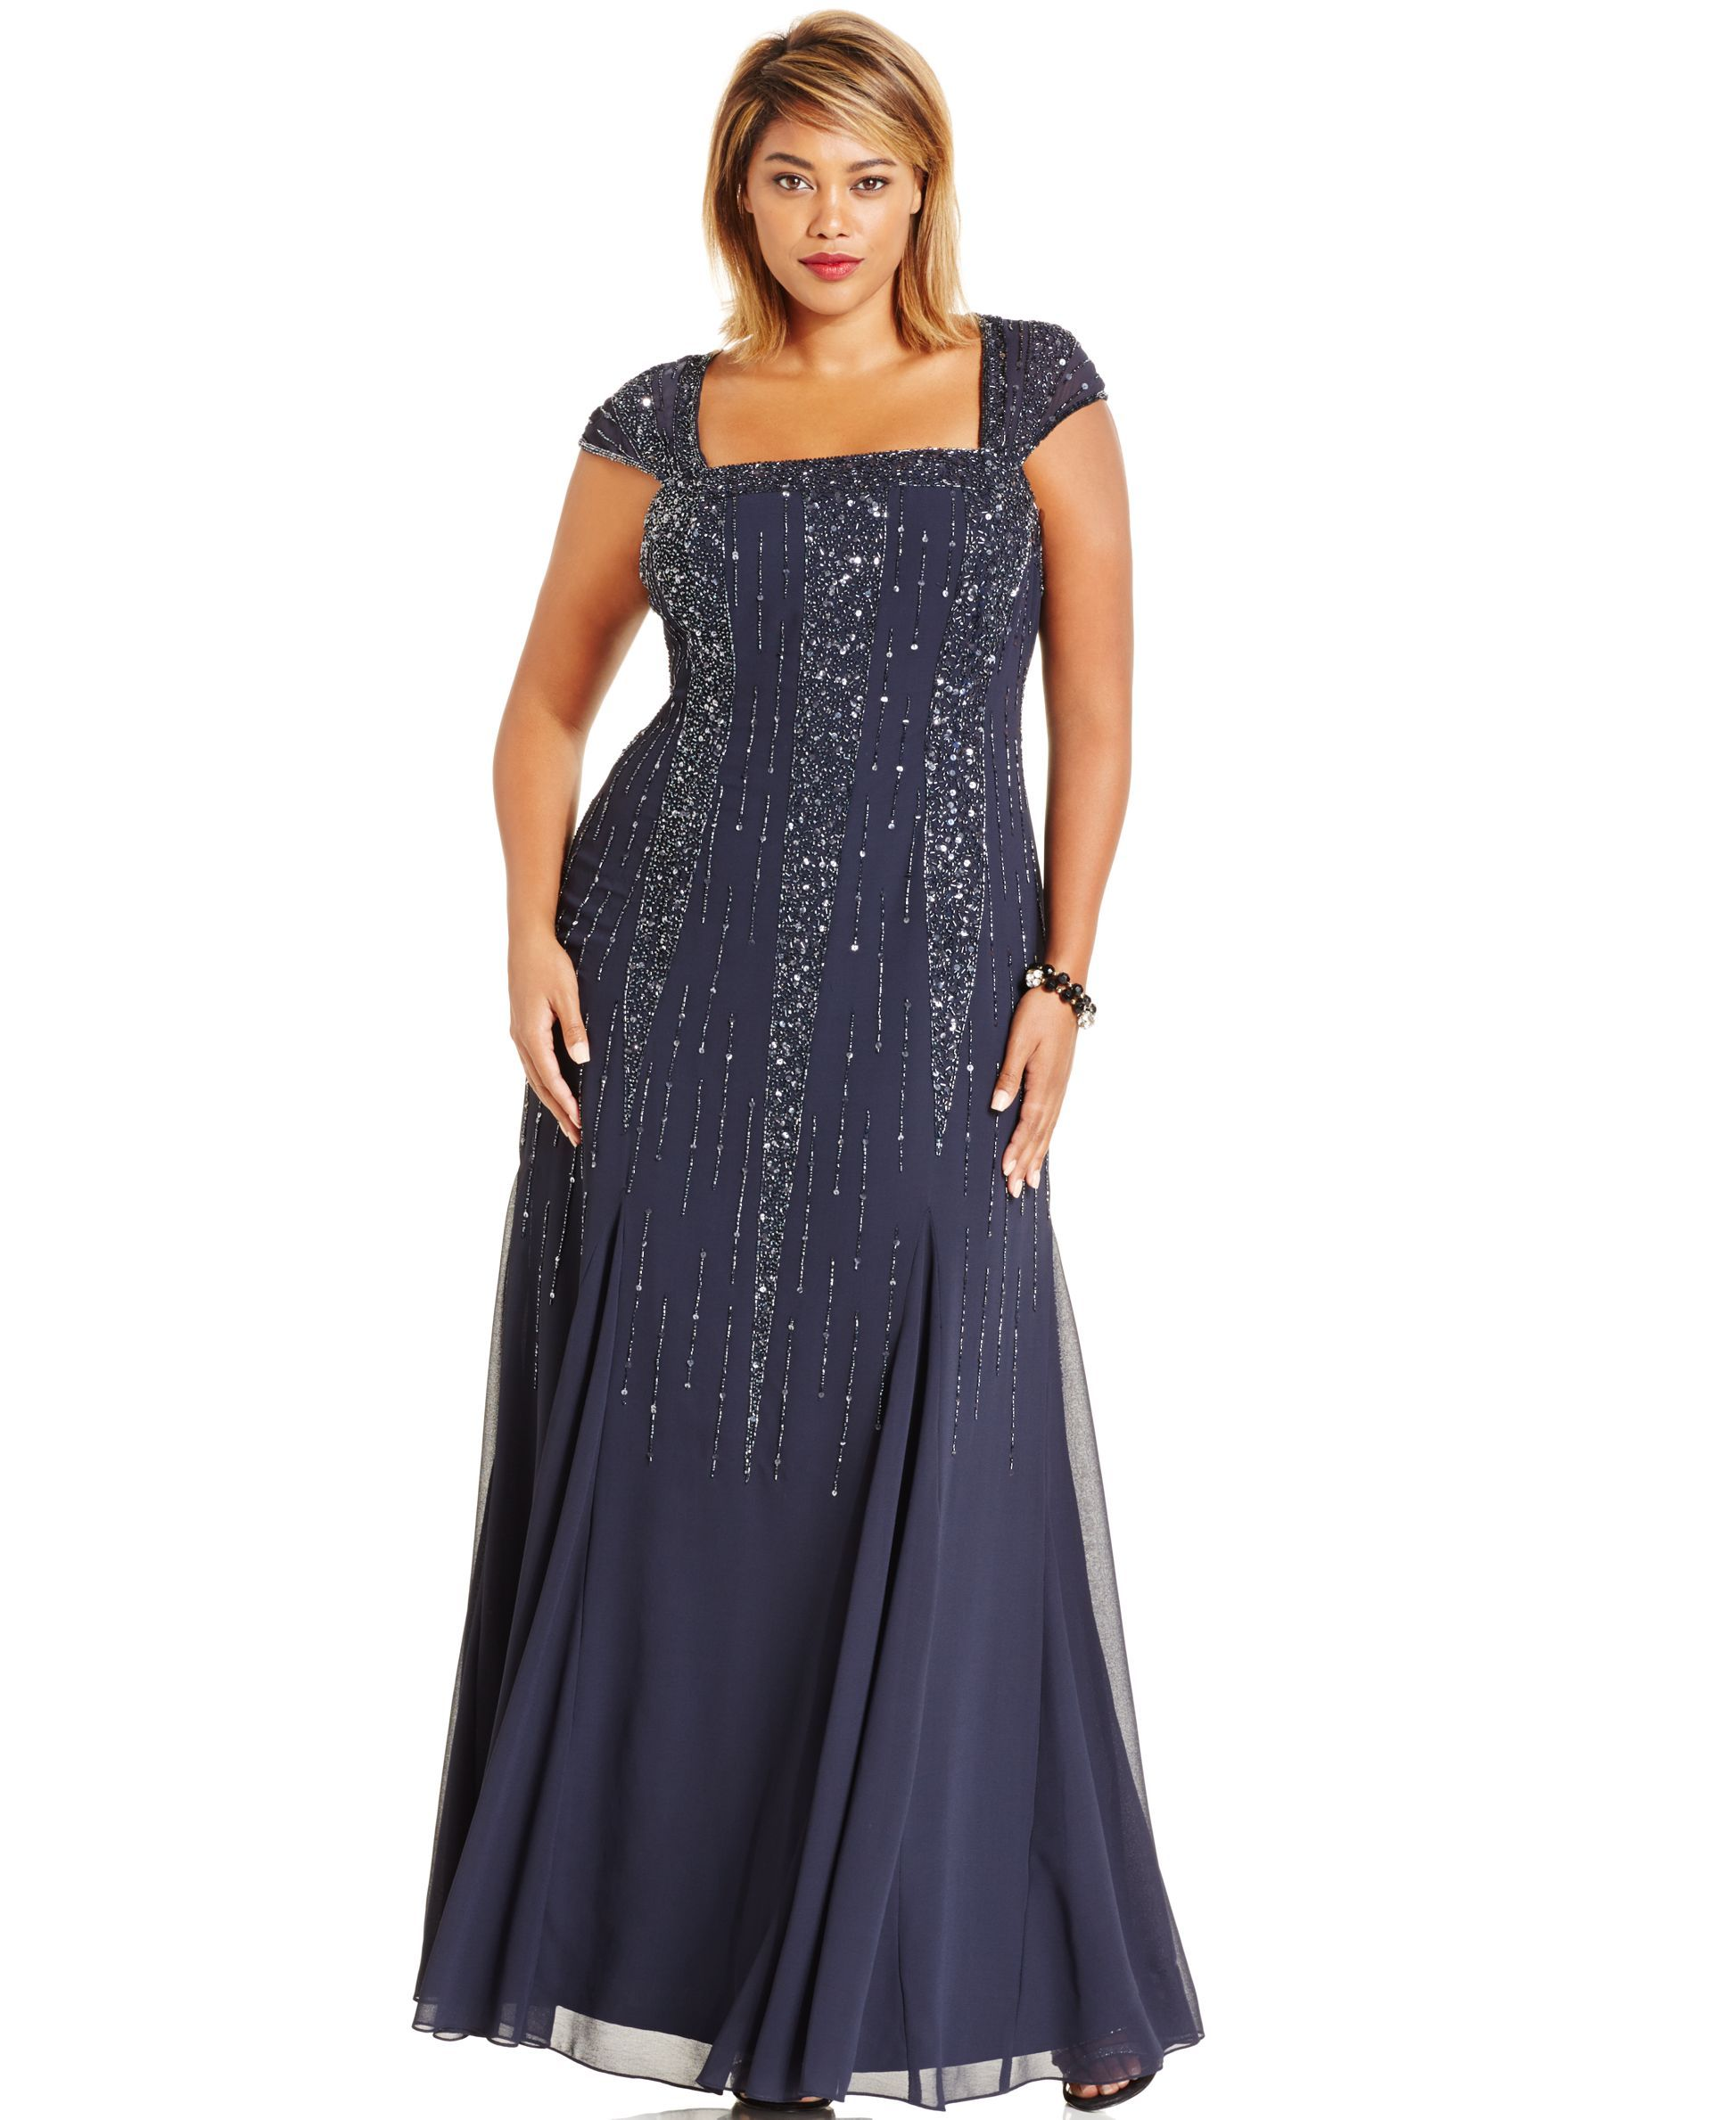 Adrianna Papell Embellished Chiffon Evening Gown | Products | Pinterest